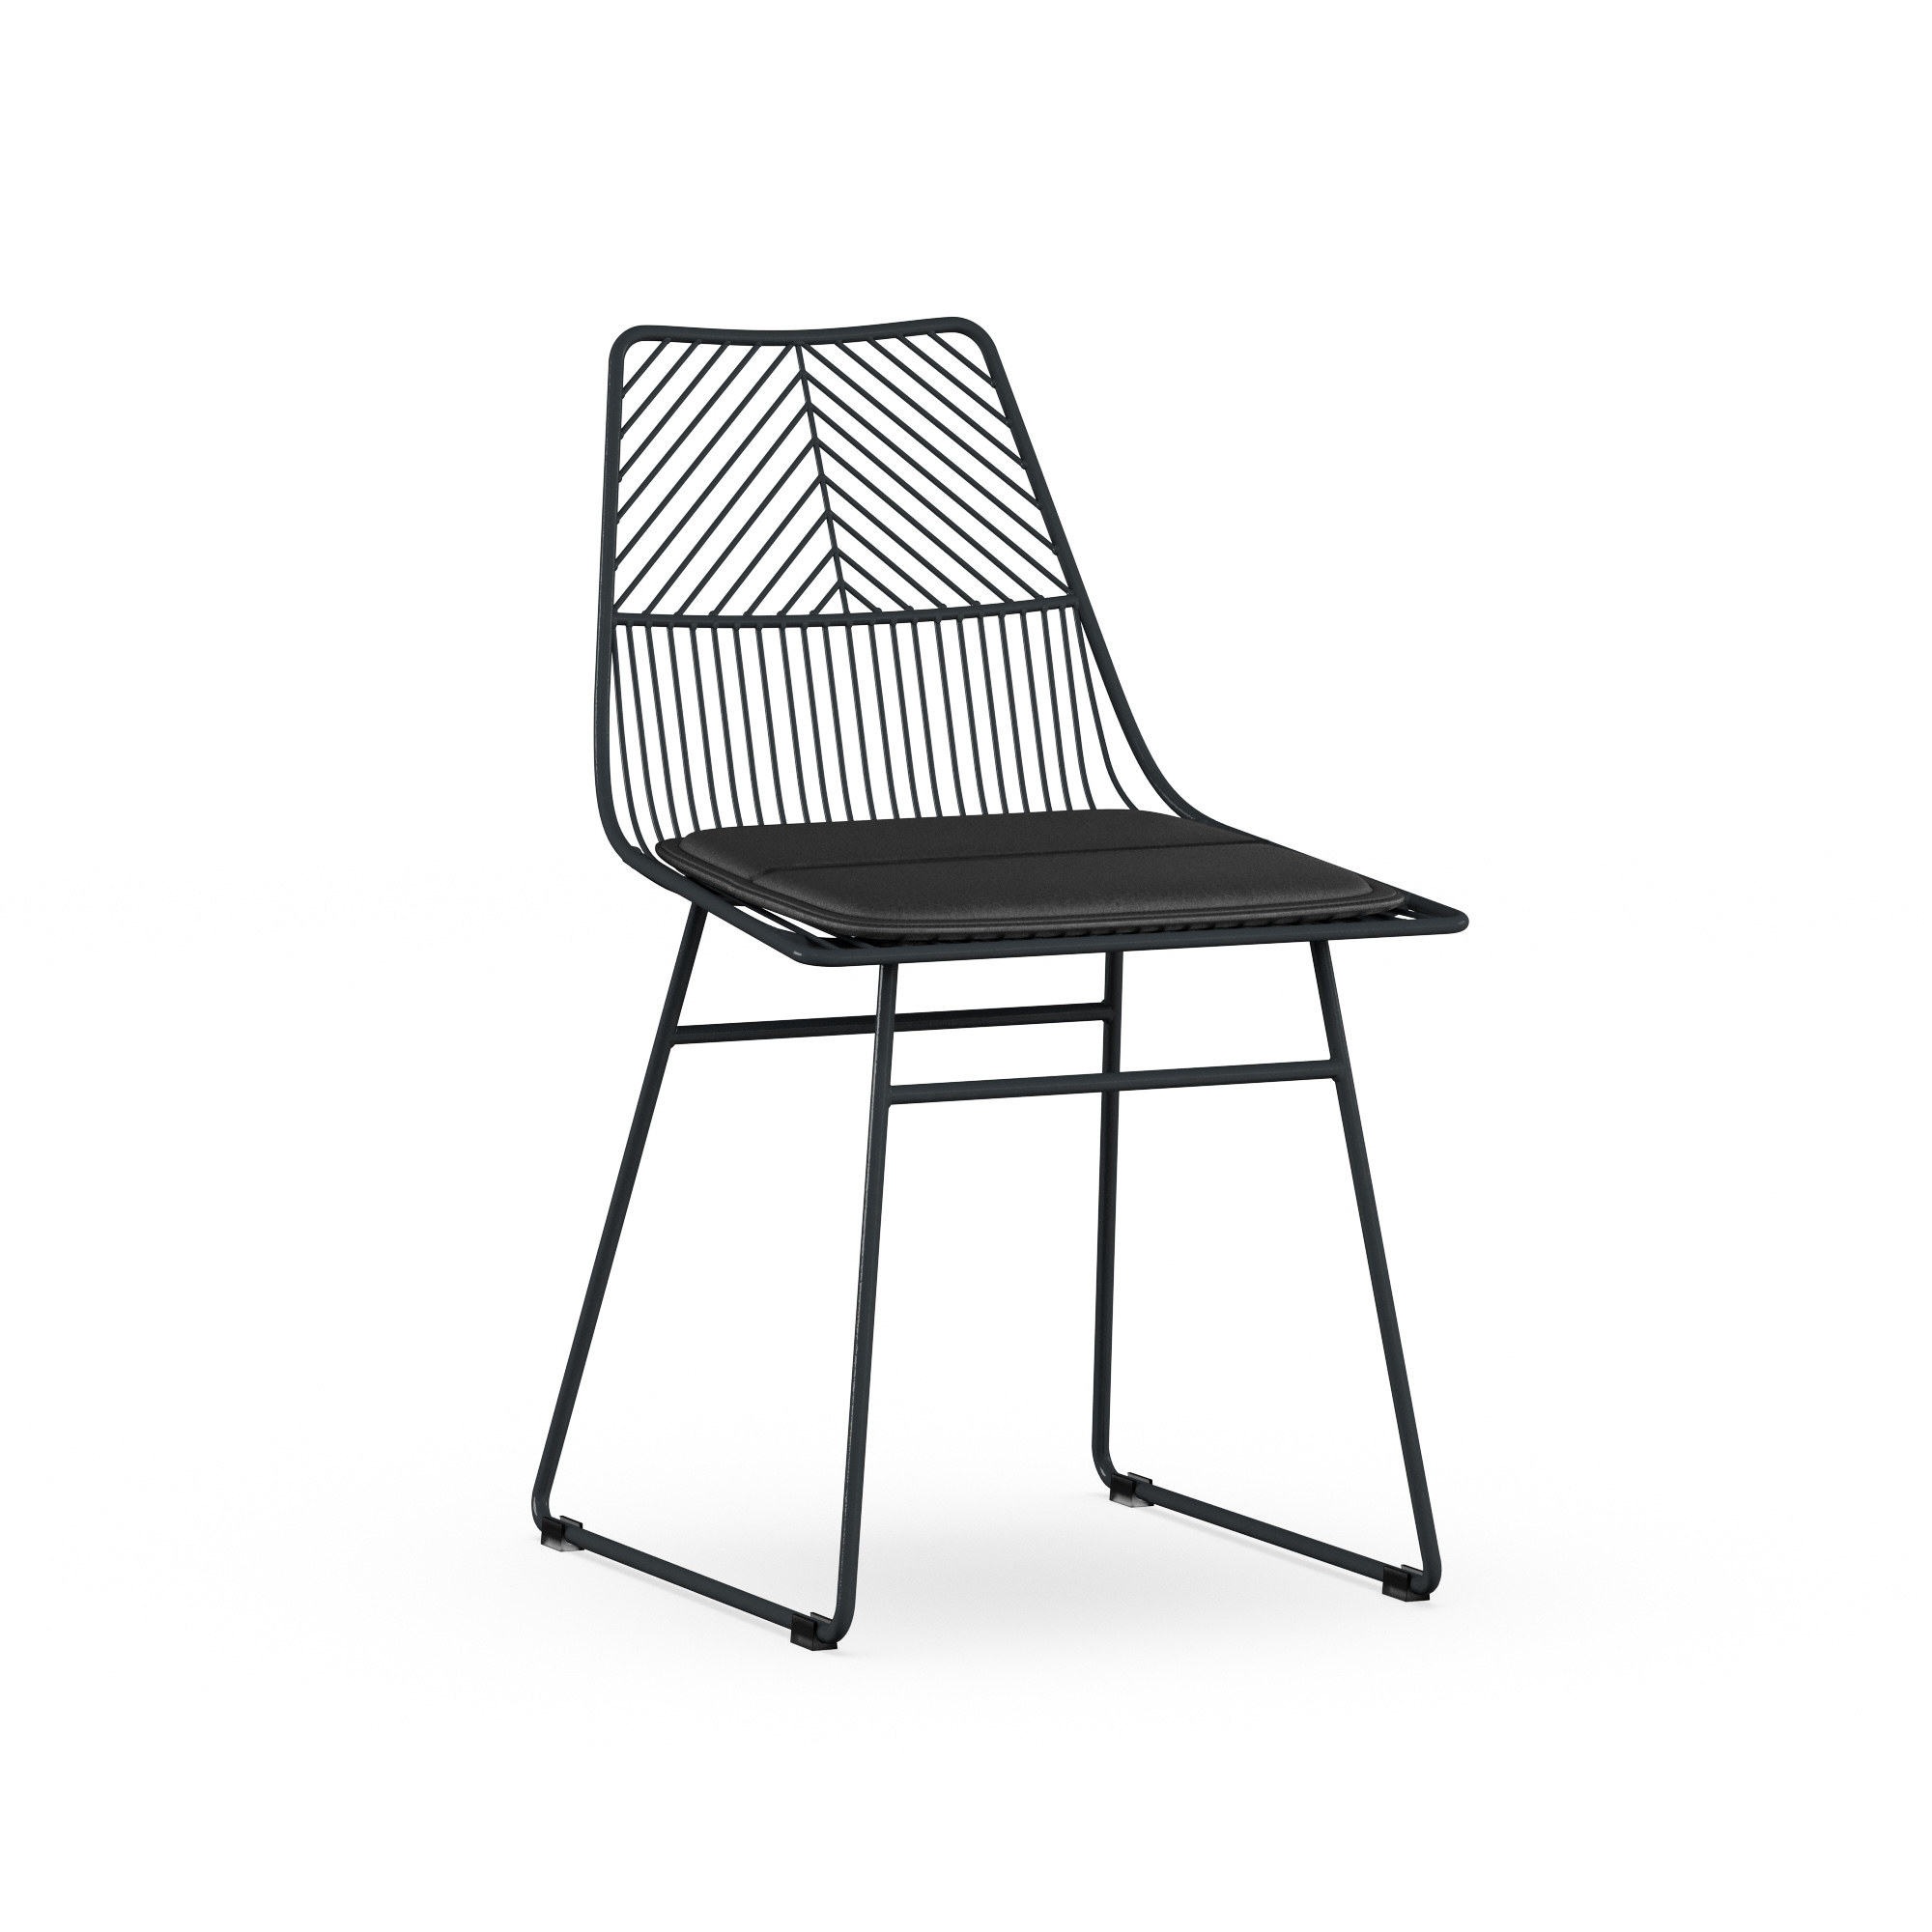 a black chair with a wired backing and thin metal legs